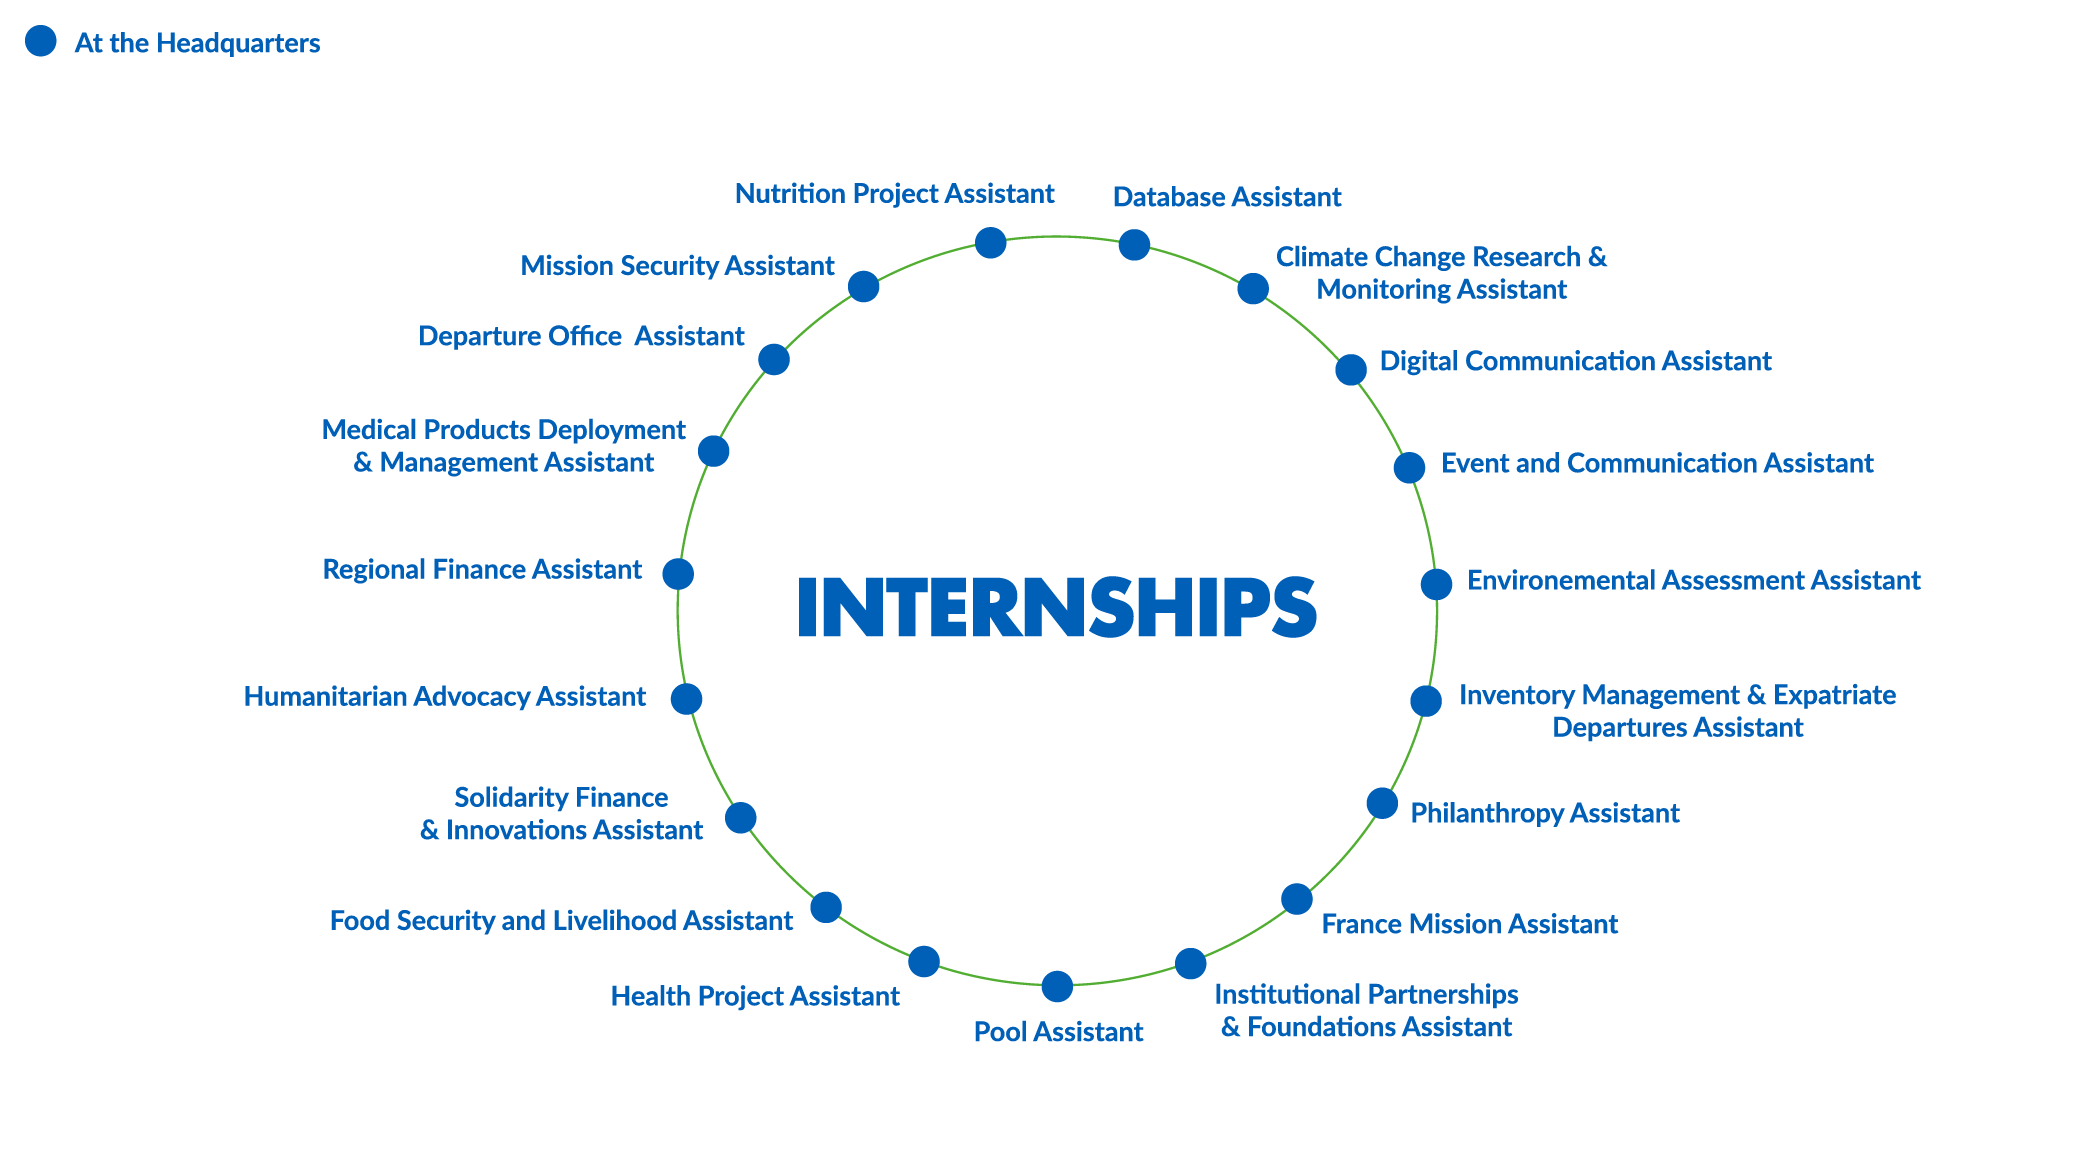 CARTOEN_Internships